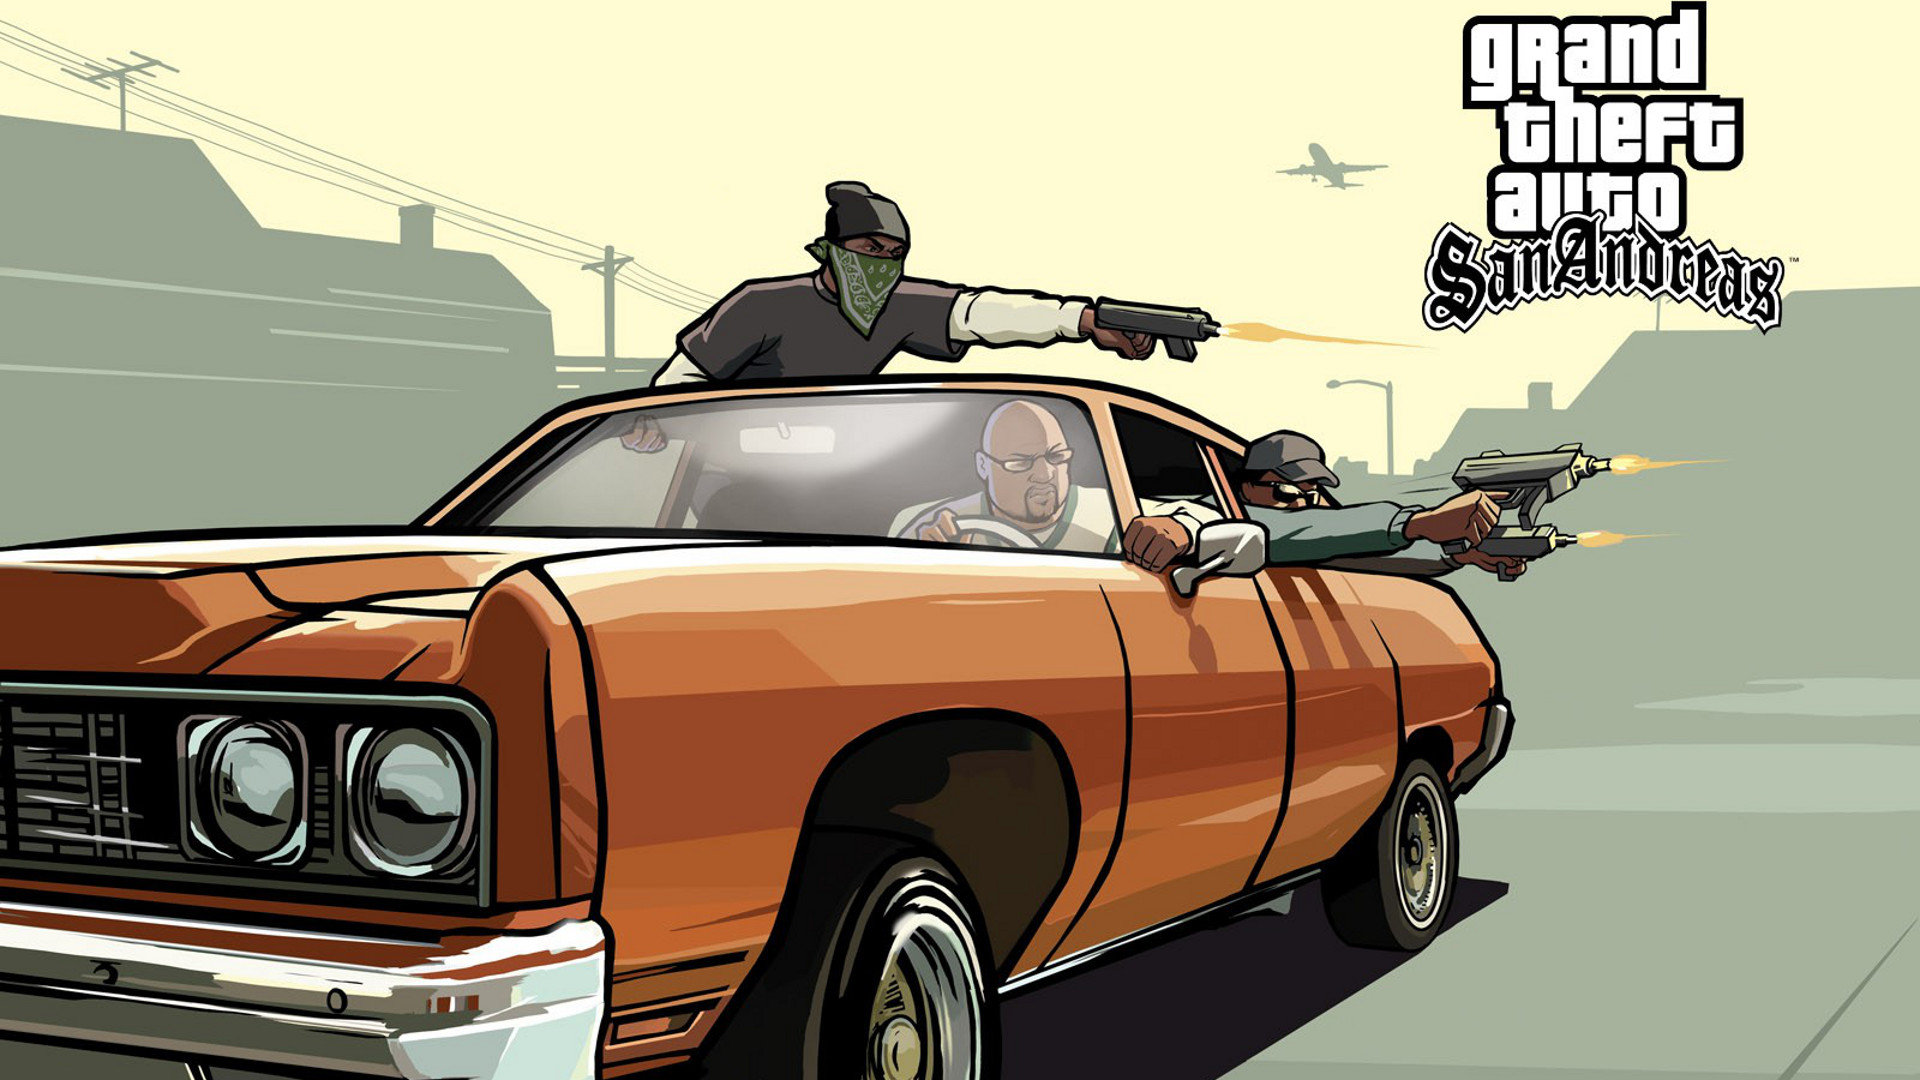 Download Hd P Grand Theft Auto San Andreas Gta Sa Desktop Wallpaper Id